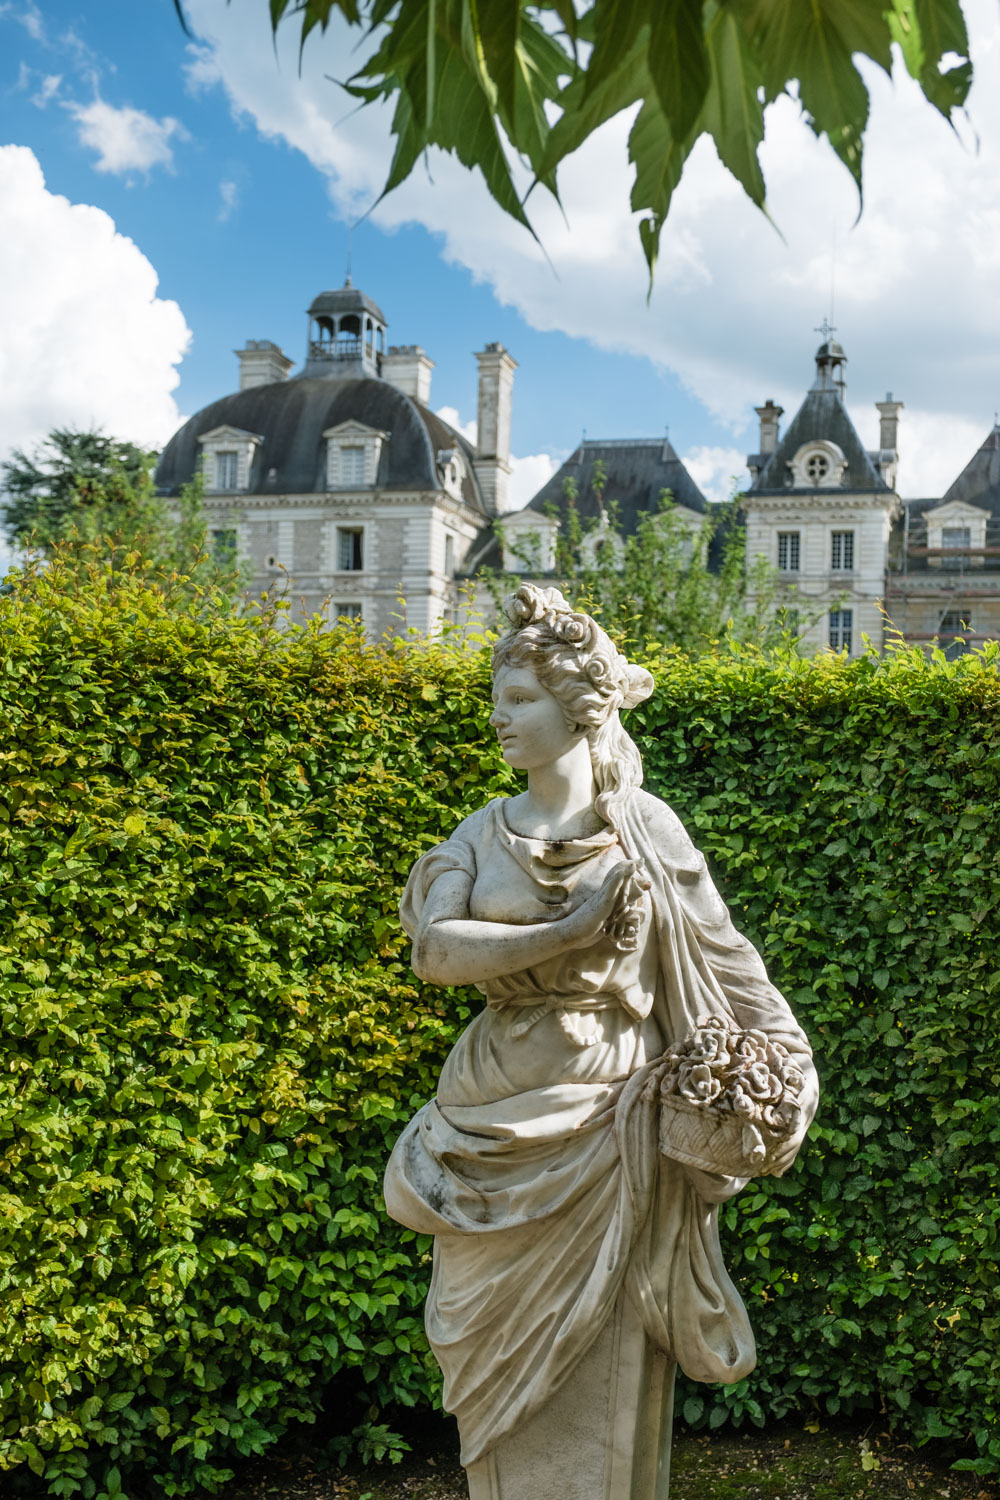 A statue in the gardens of Cheverny